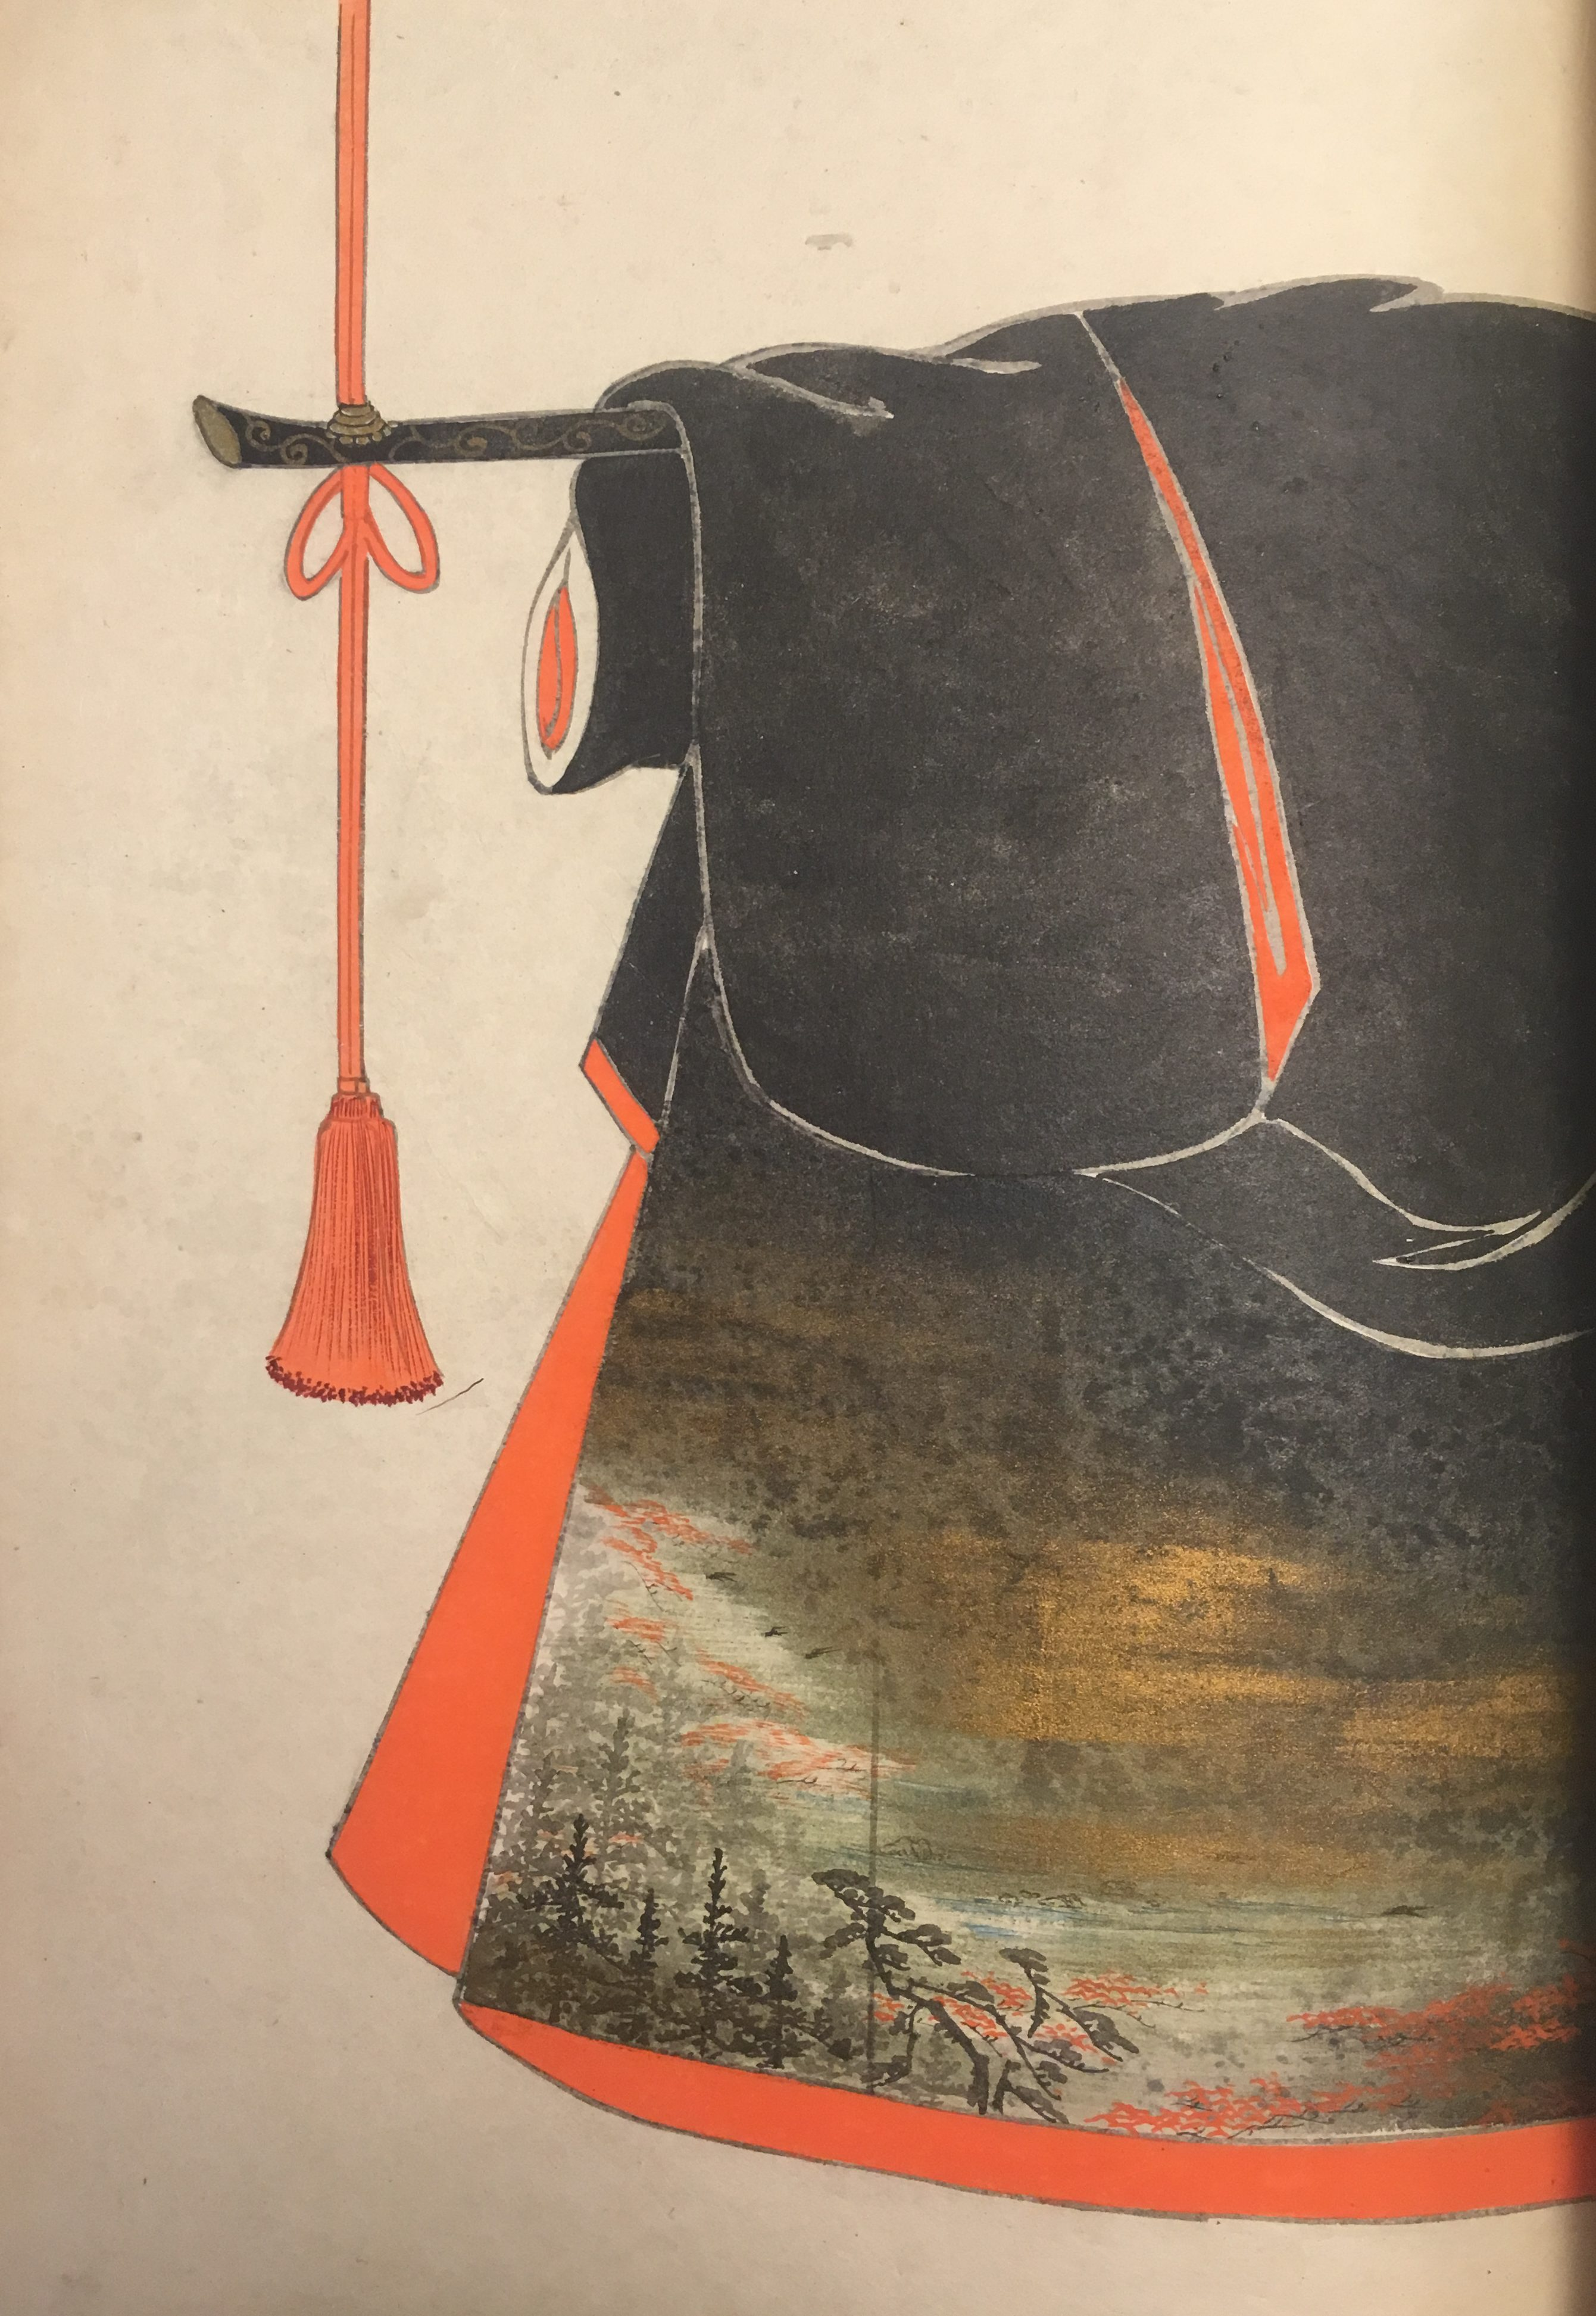 A design depicting a black kimono with a brilliant orange interior lining and an illustration of a forest under a night sky in the outside bottom corner.